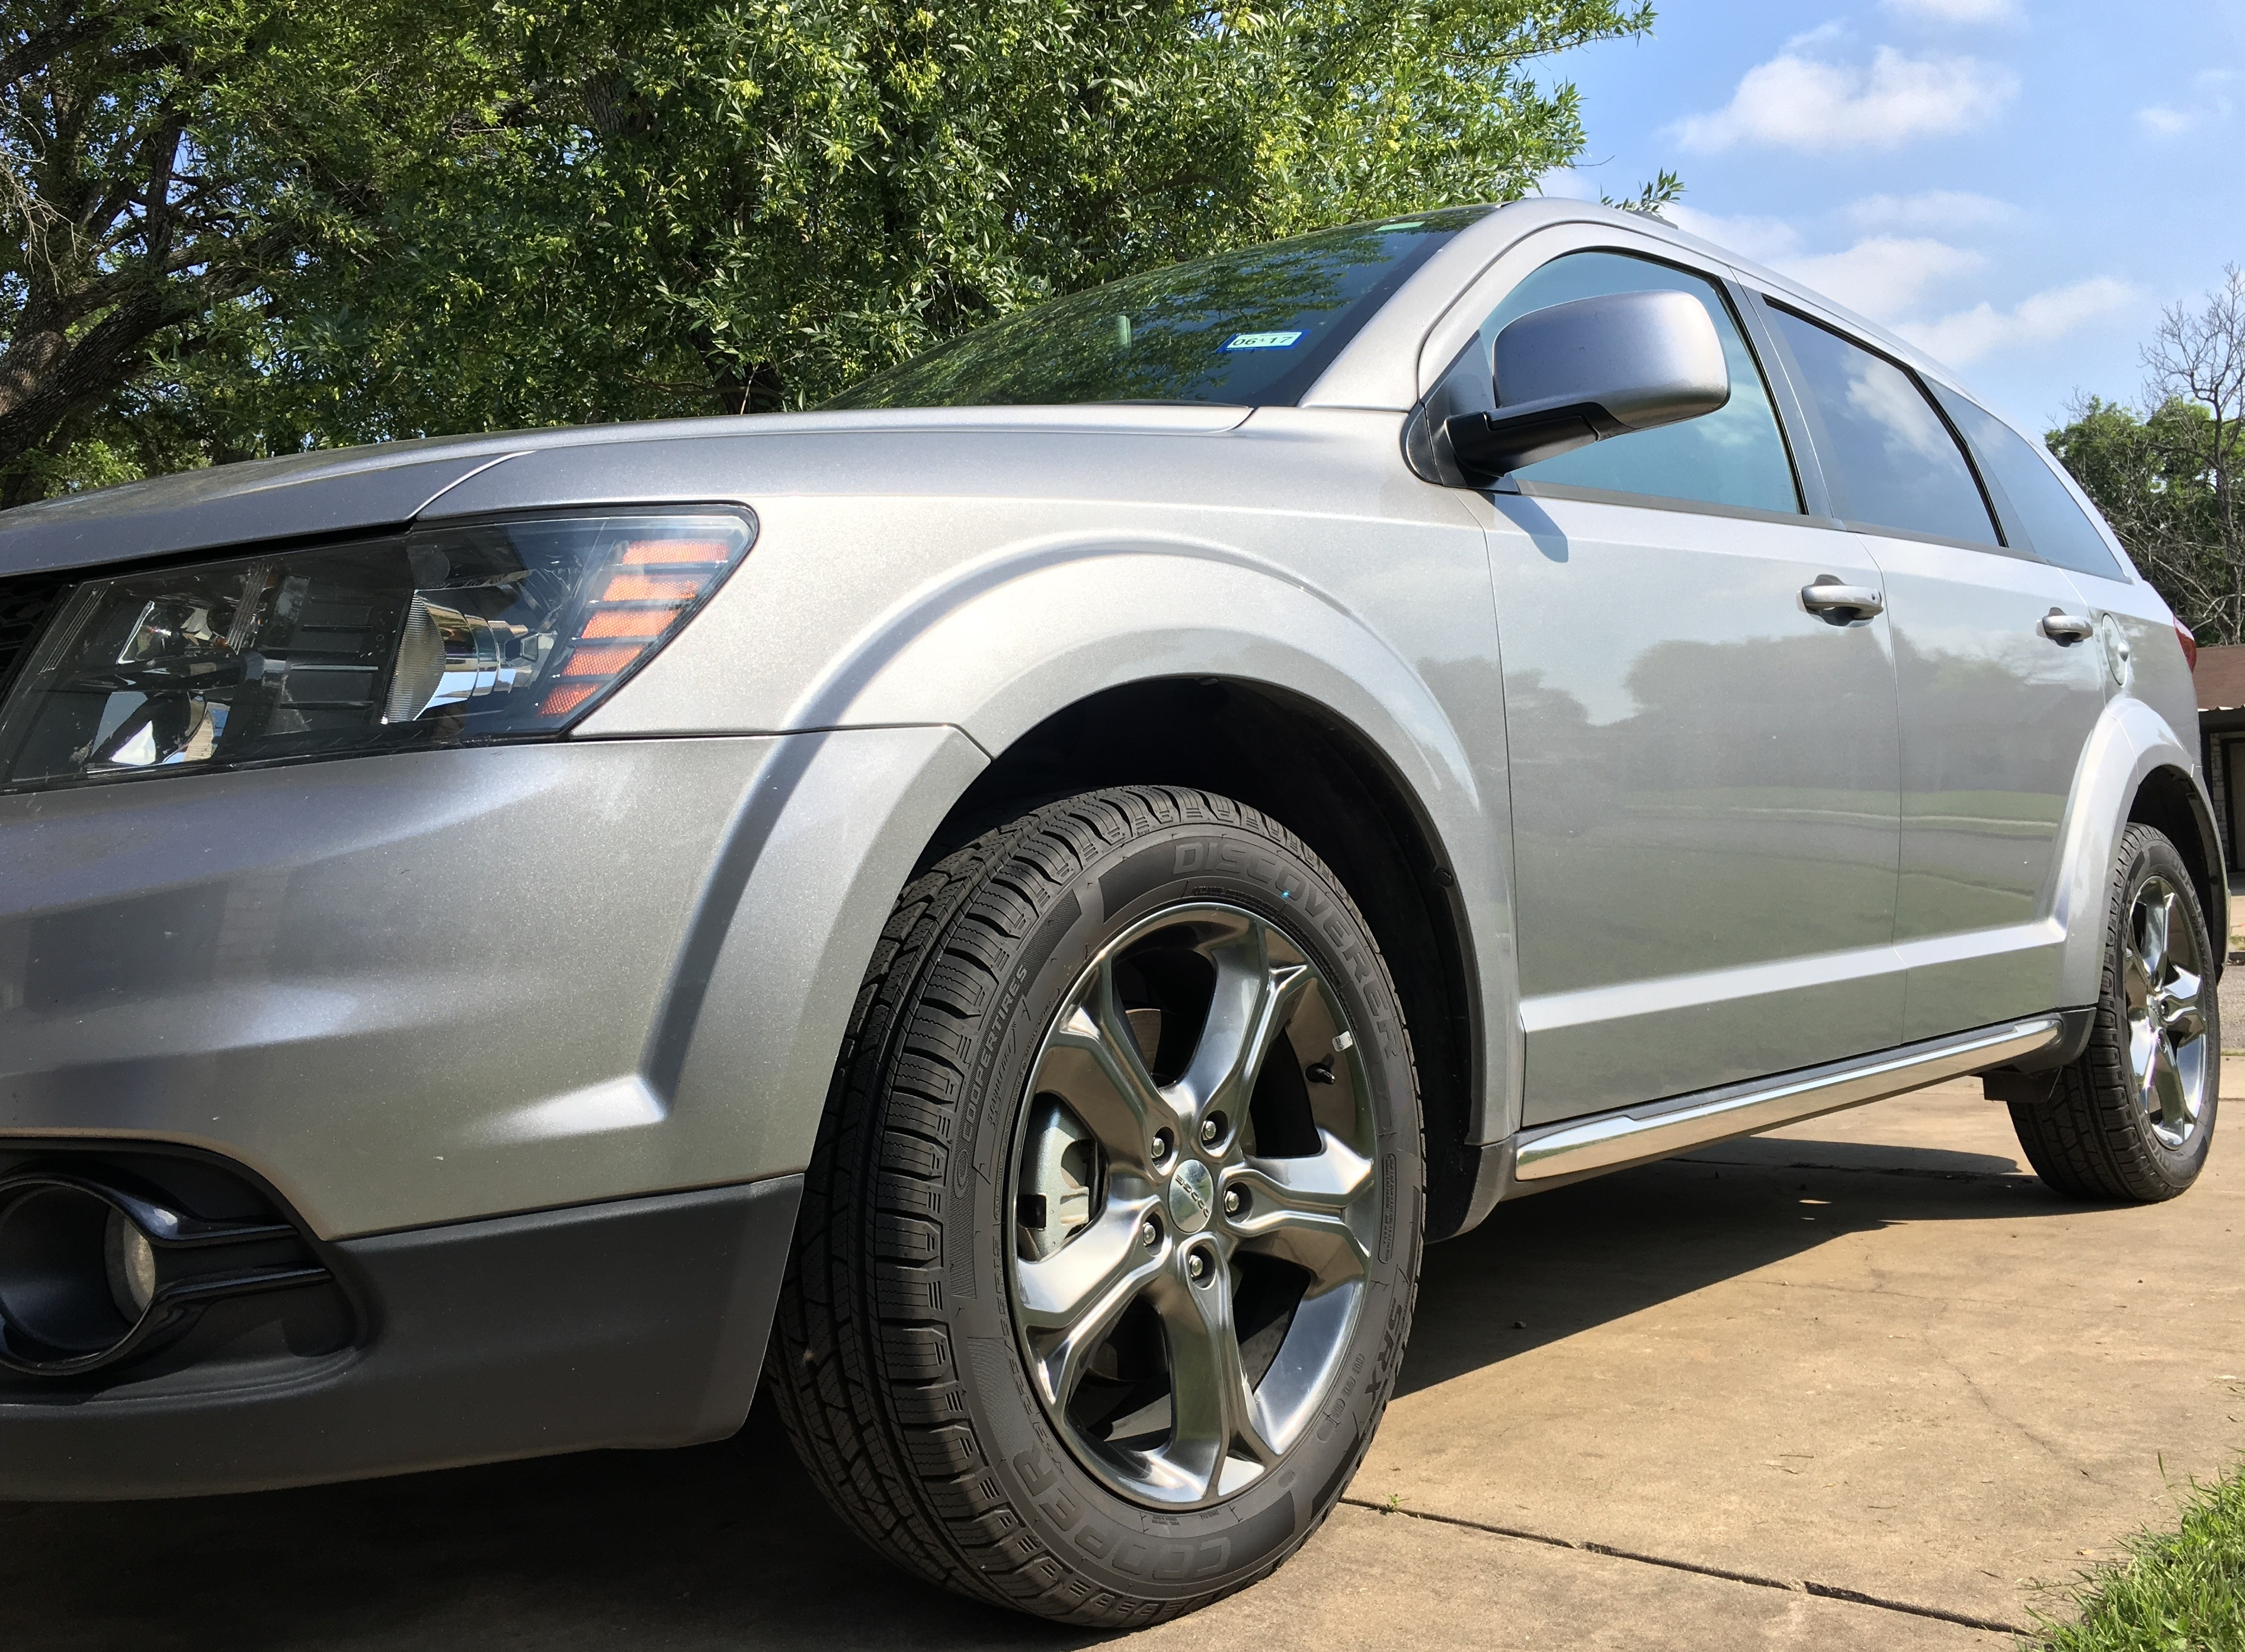 New Tires on Family Car - Cooper Tires